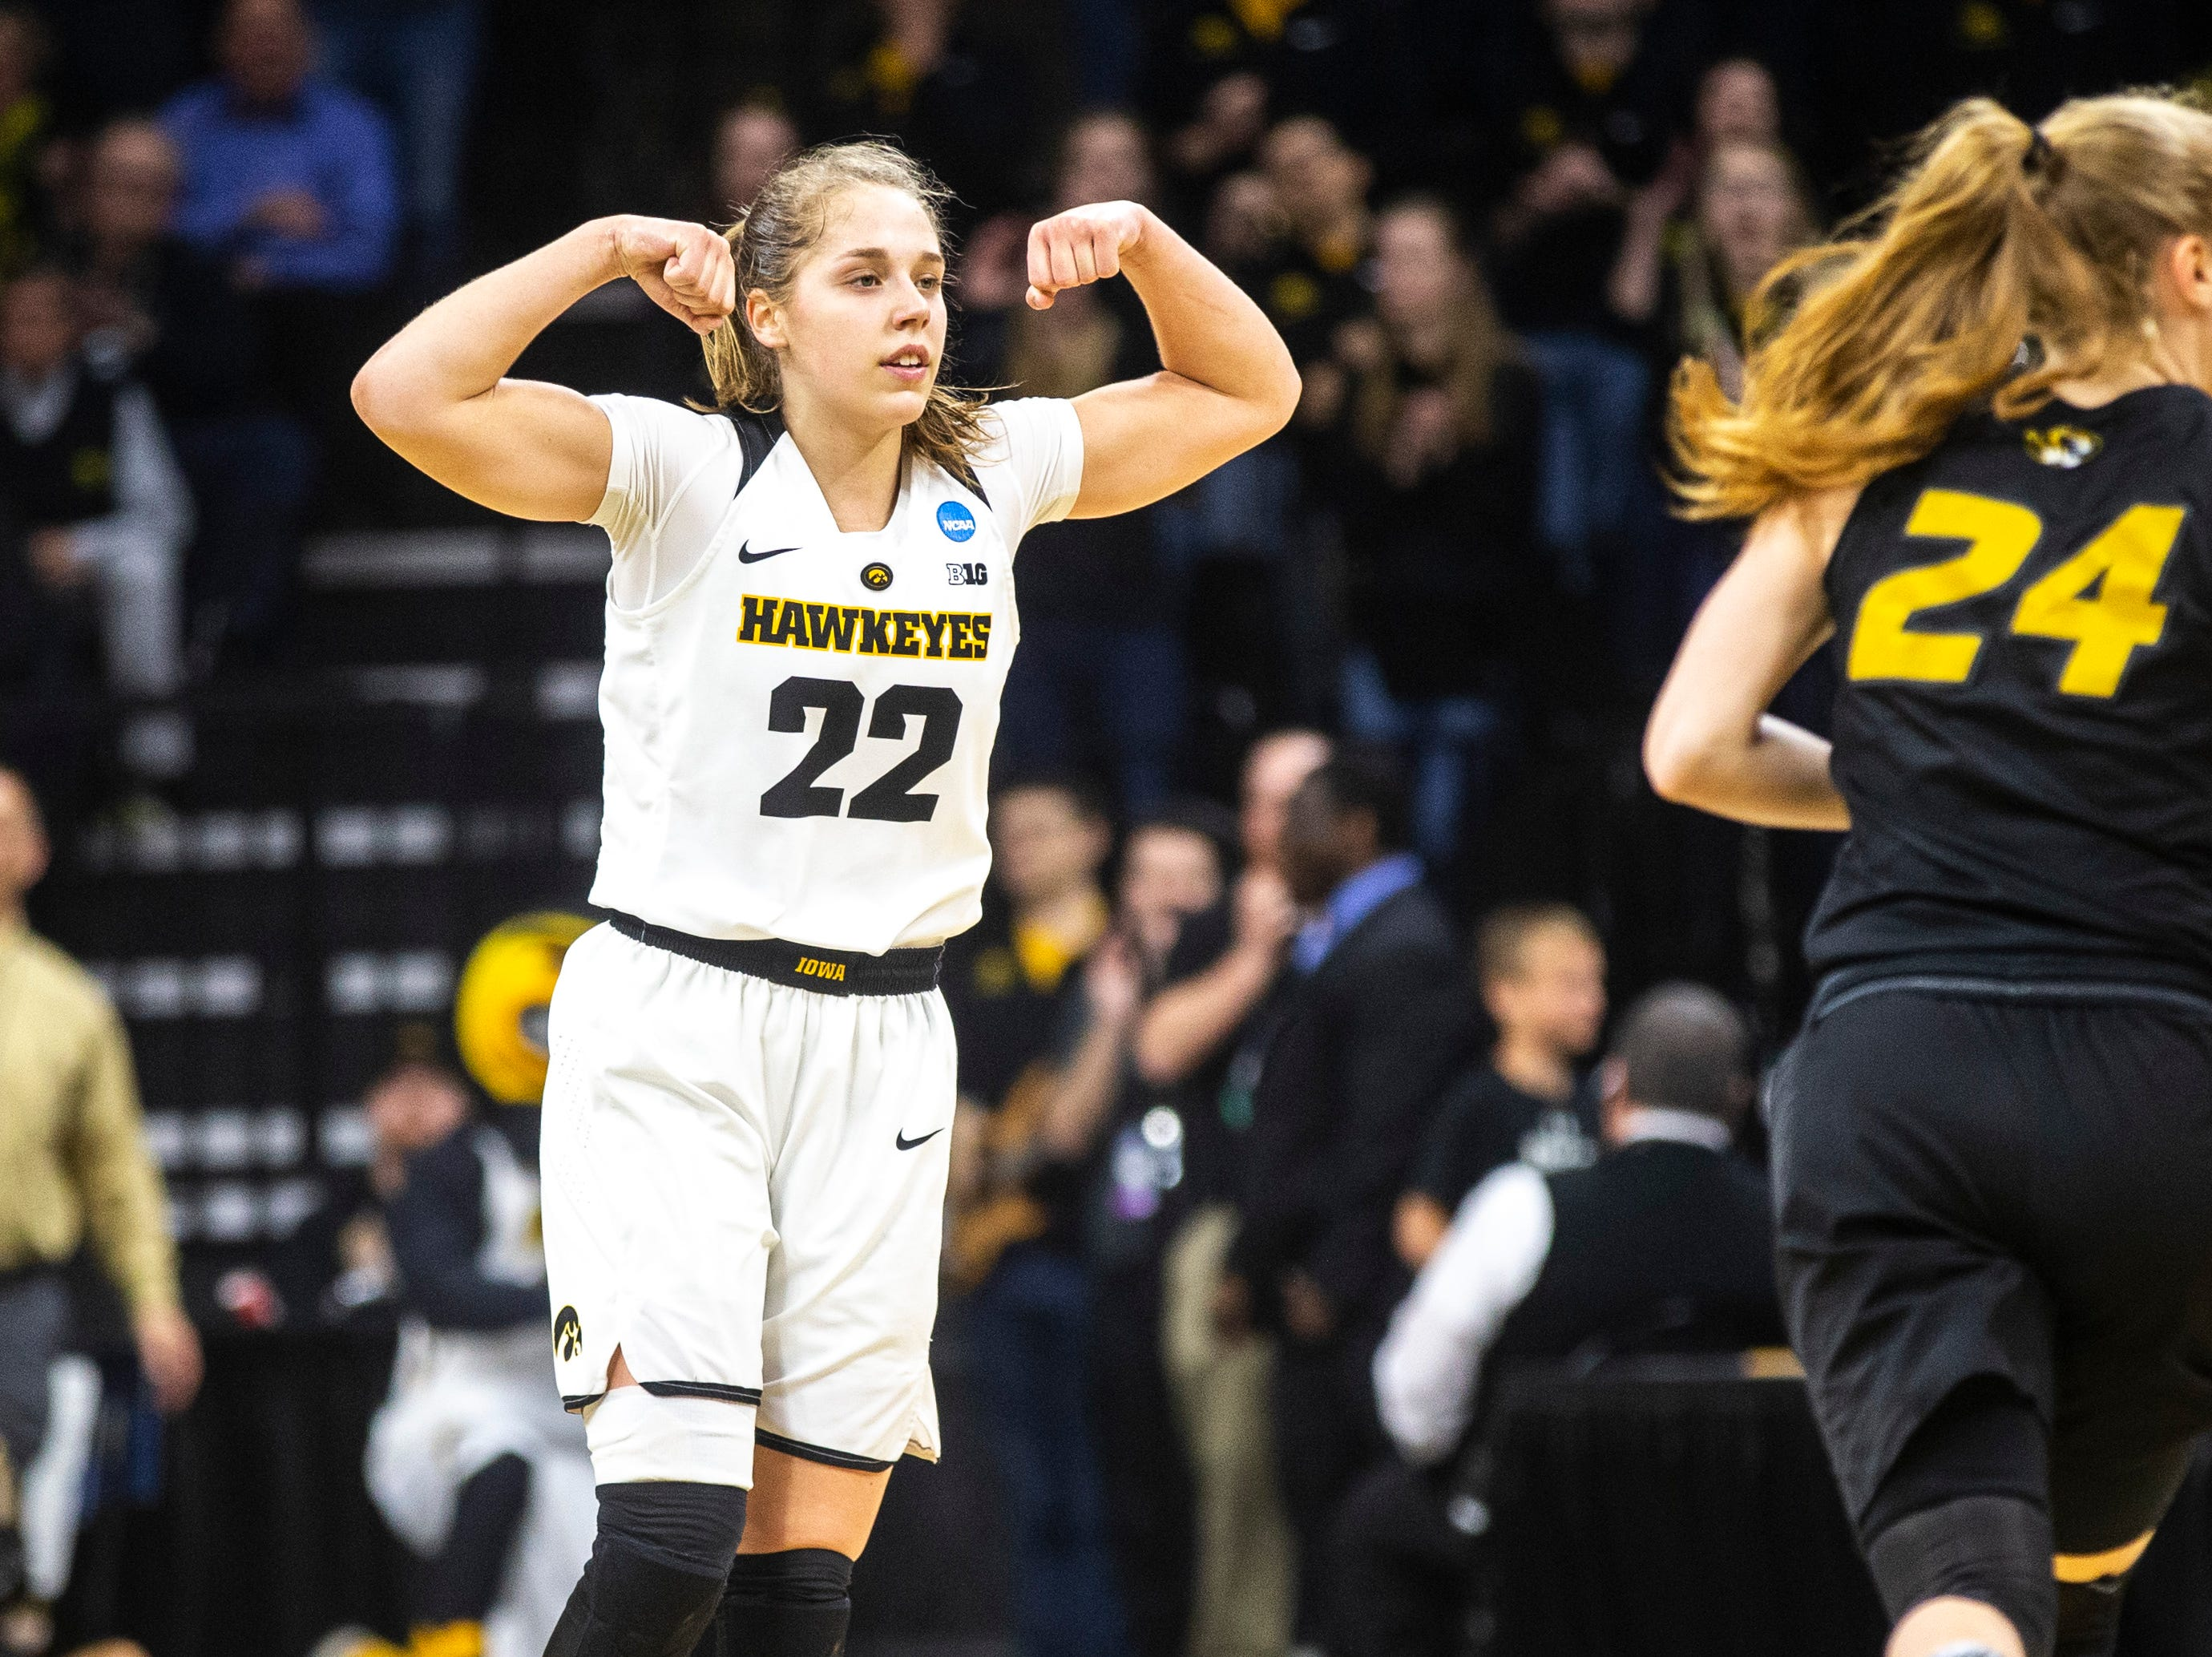 Iowa guard Kathleen Doyle (22) flexes while settling in on defense during a NCAA women's basketball tournament second-round game, Sunday, March 24, 2019, at Carver-Hawkeye Arena in Iowa City, Iowa.